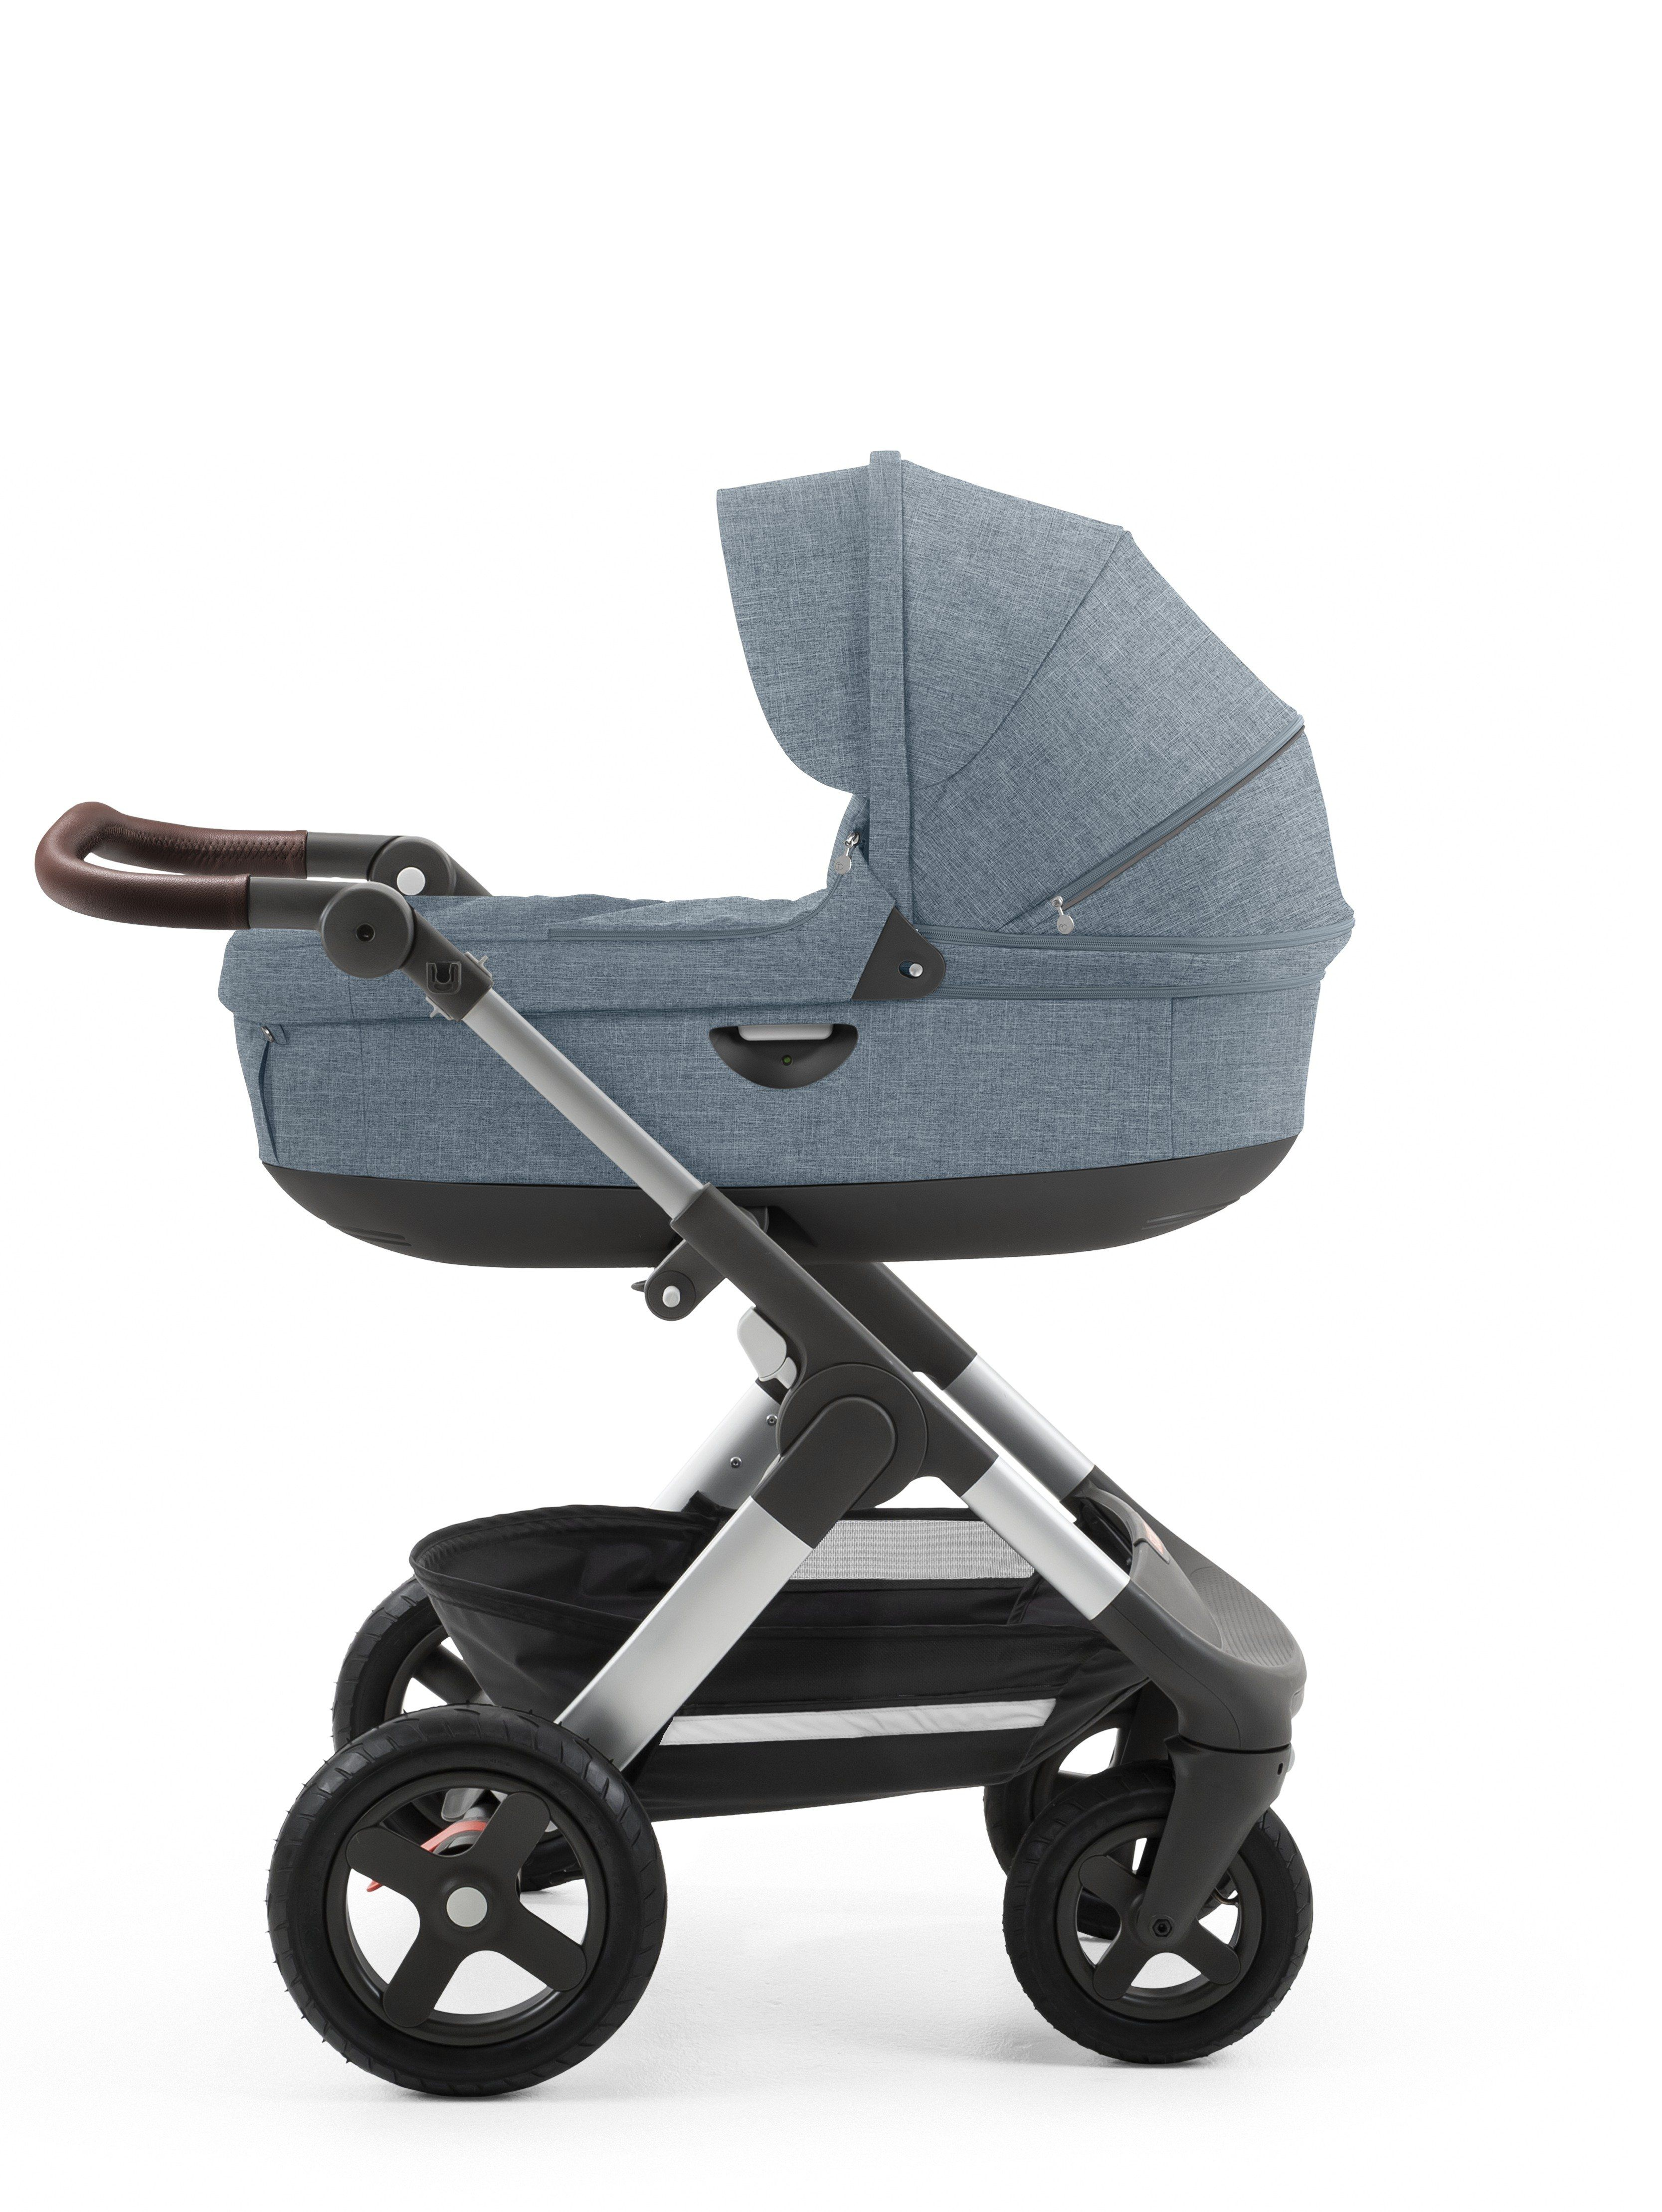 Stokke Trailz Stroller Nordic Blue With All Terrain